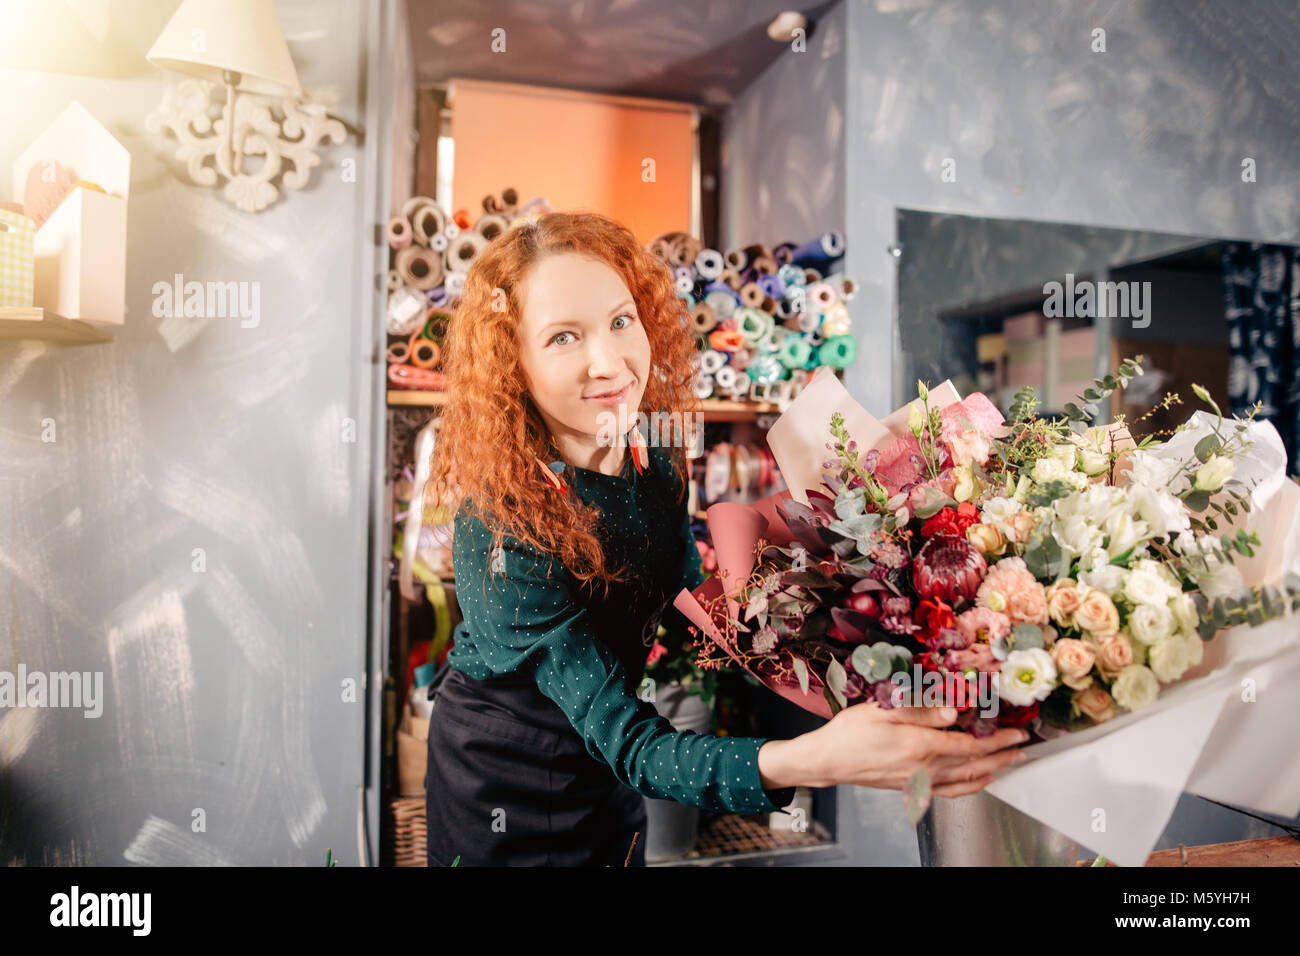 happy shop assistant showing prepared rich floral bouquet at store - Stock Image